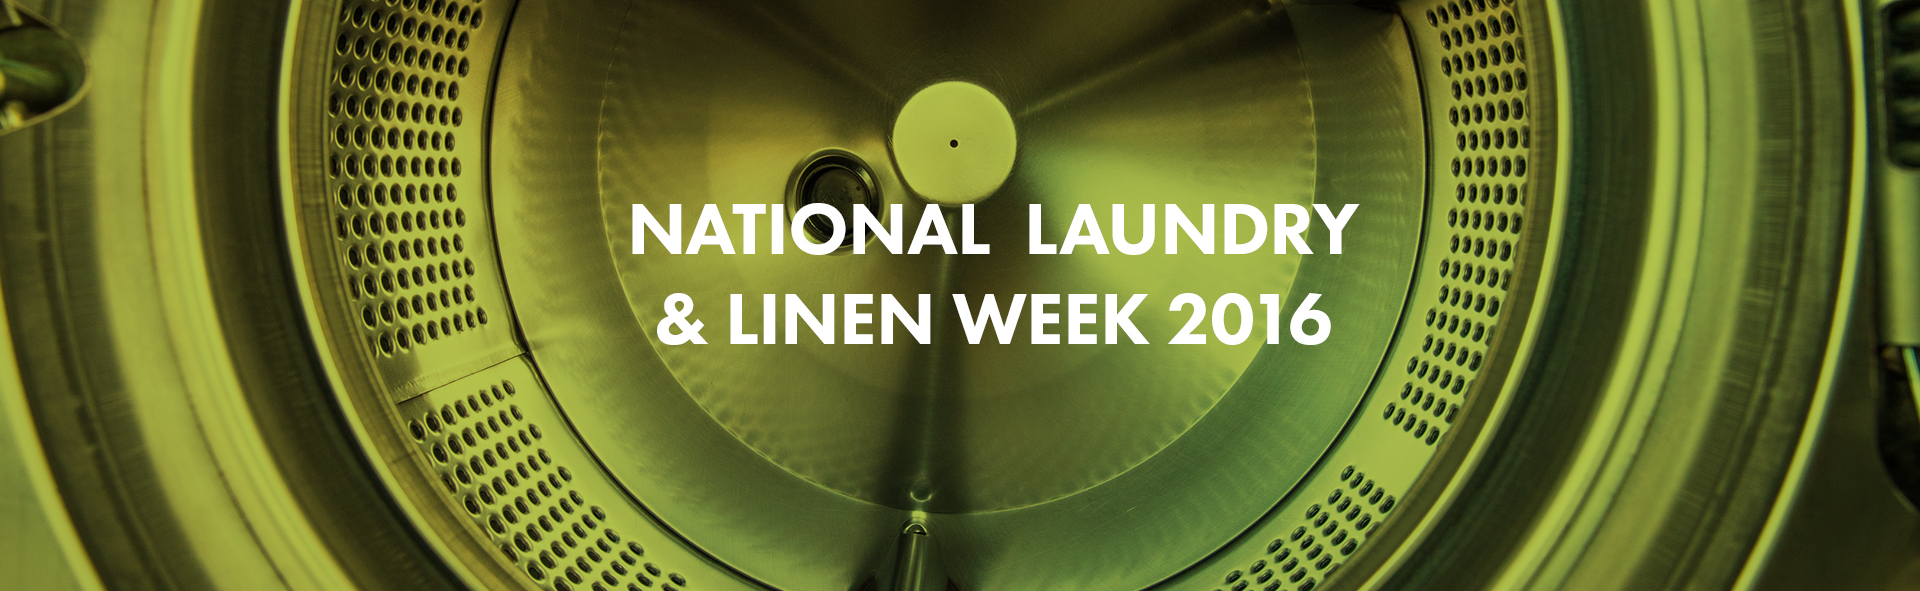 Commercial Laundry Week-web.jpg